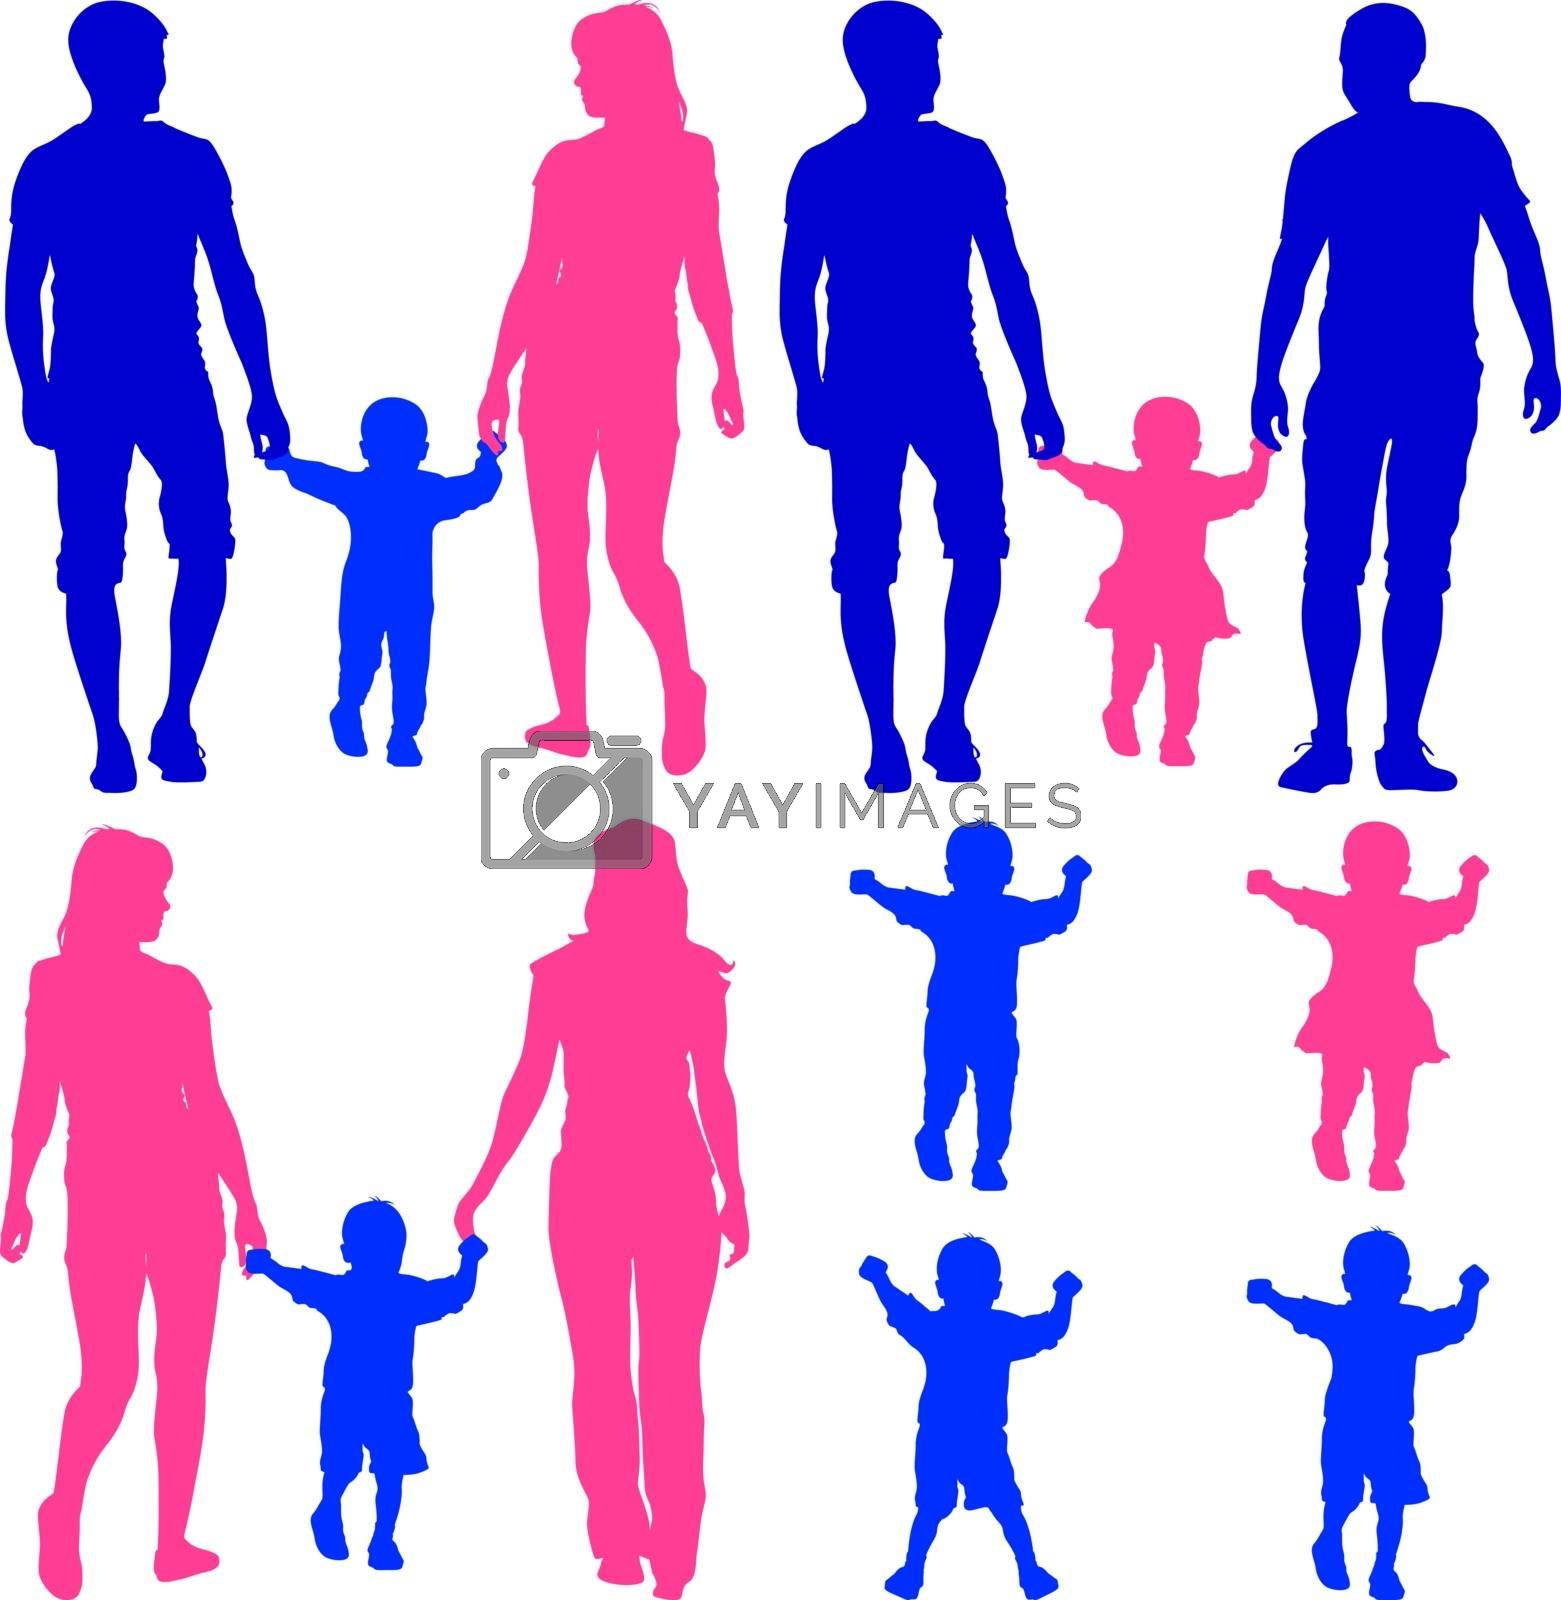 Blue, pink silhouettes Gay, lesbian couples and family with children on white background. Vector illustration.